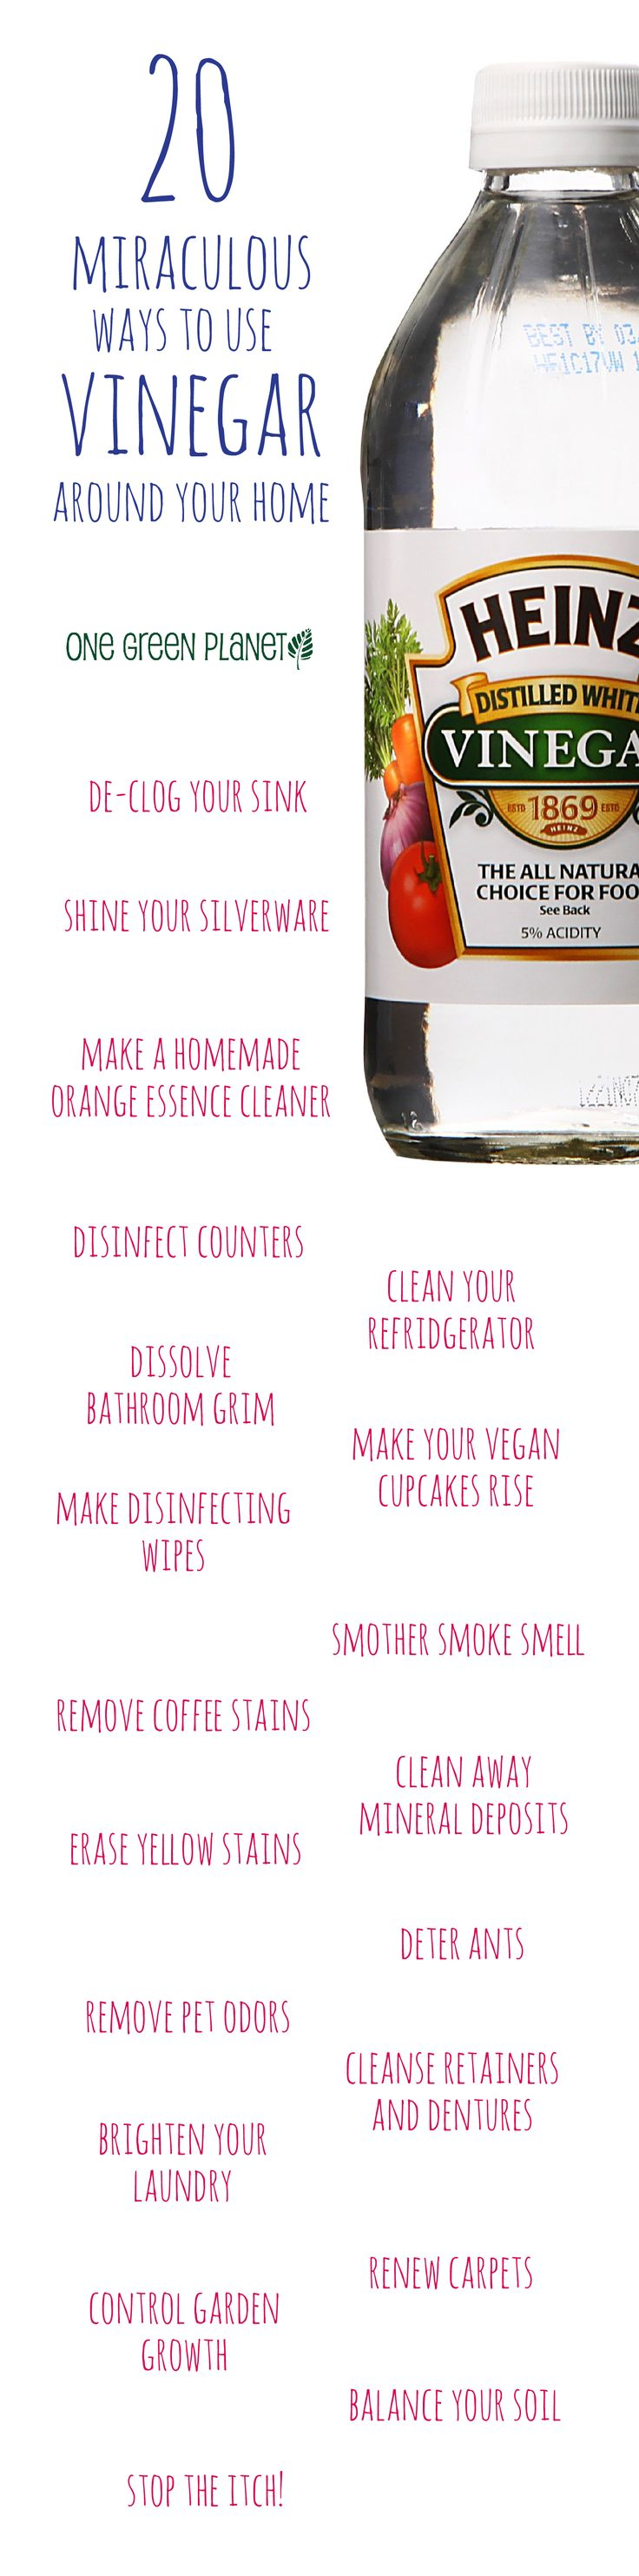 PLEASE do NOT consume synthesized vinegar. Use only organic Apple Cider Vinegar in food. Use the cheap synthetic vinegar for all of the household uses listed. Also: you can get a good deal of the pesticides off non-organic produce by soaking them in a sinkful of water into which you add: 1/2 cup Vinegar (synthetic is fine for this use as you'll rinse it off), 1 Tbs. white Salt (ditto. White salt isn't for eating, but you'll wash it off), 2 Tbs. Baking Soda. #greencleaning